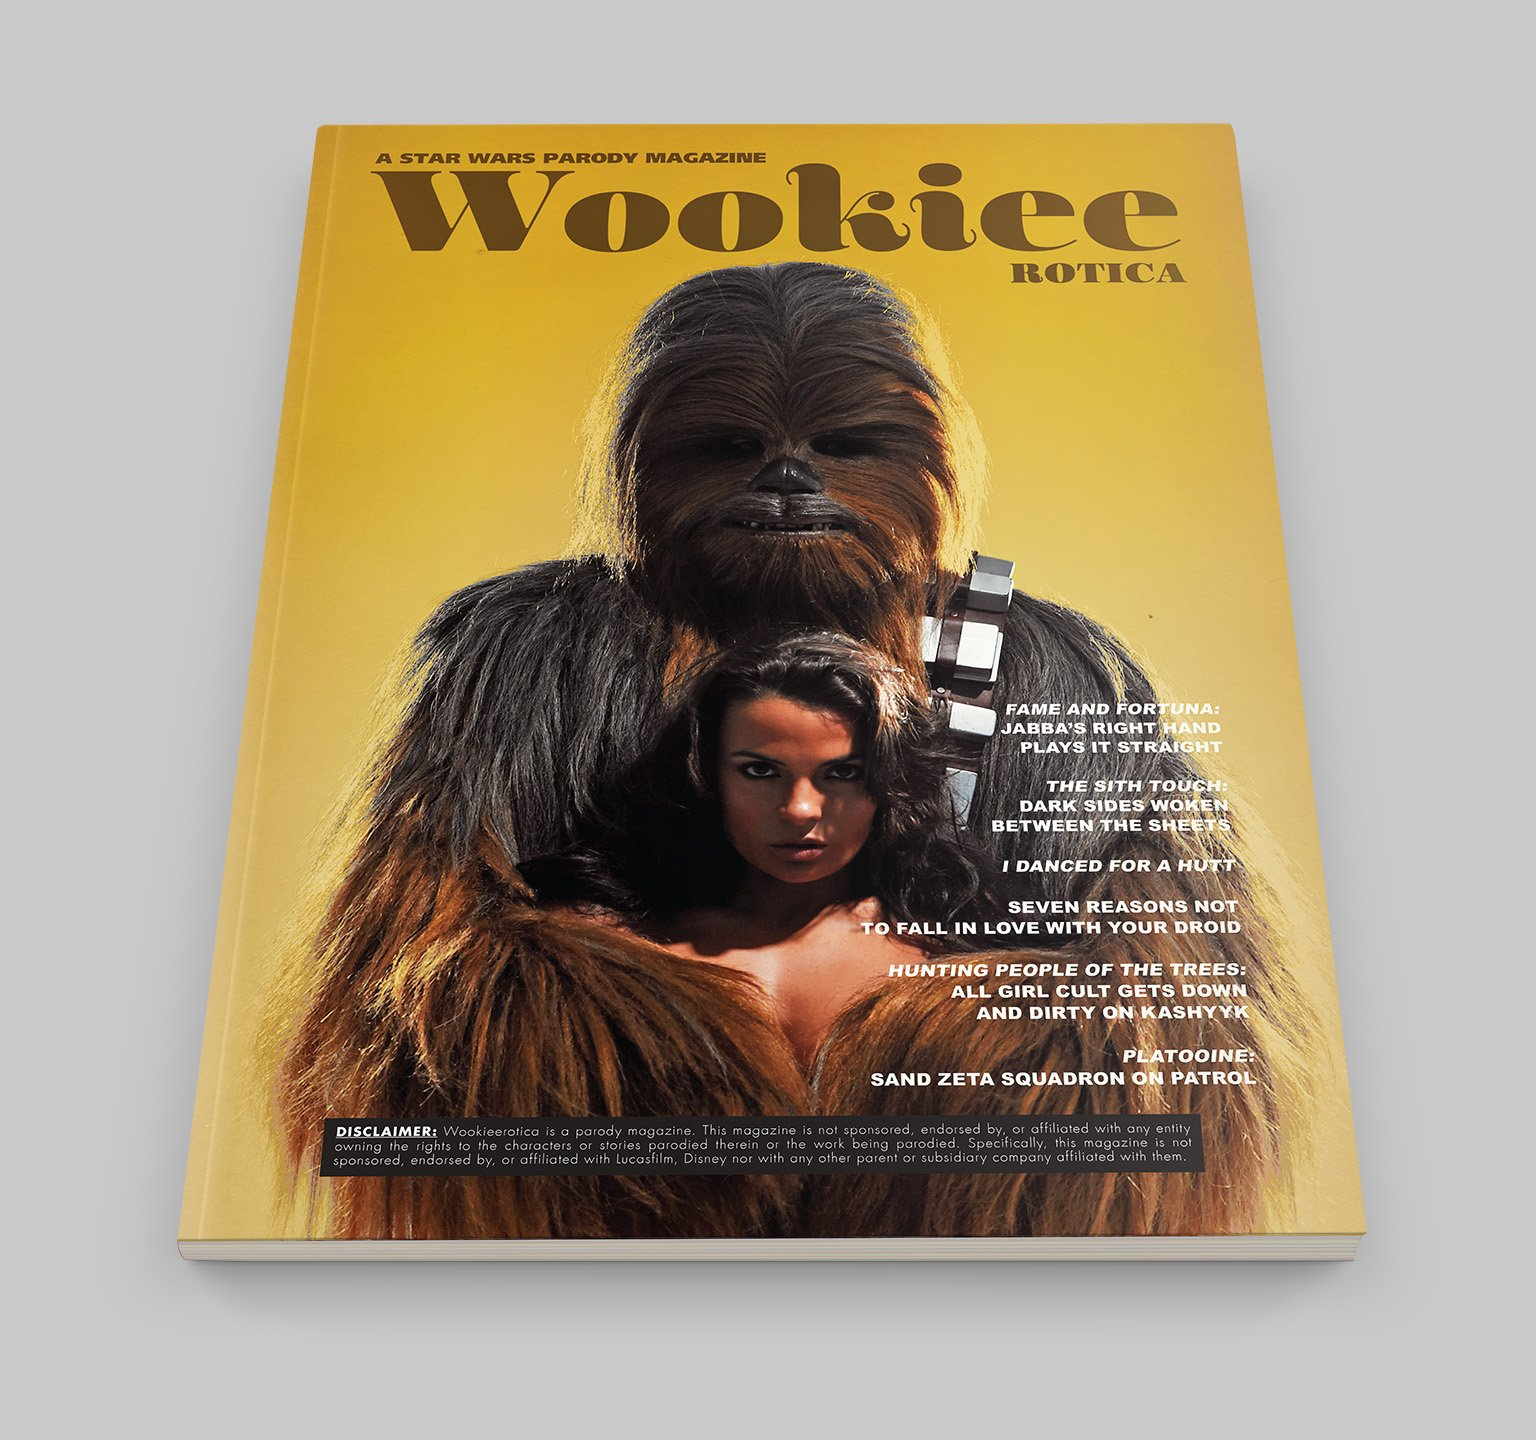 Wookieerotica: A Star Wars Parody Magazine (Issue 1)